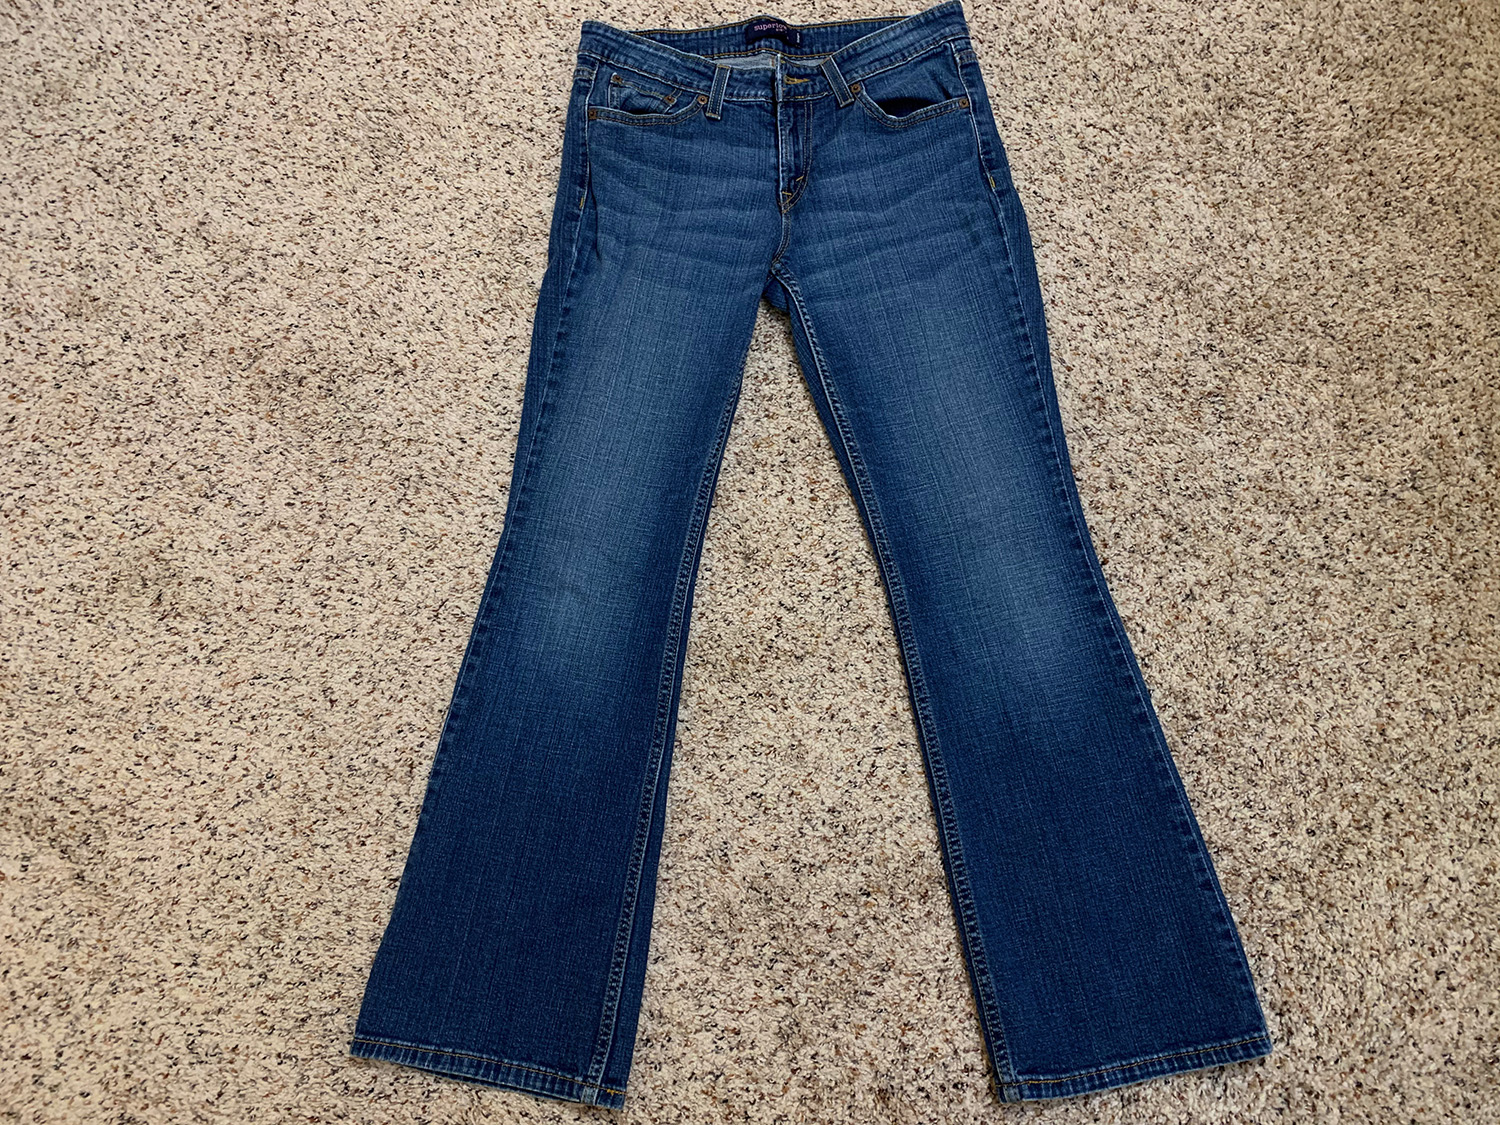 Levis Womens Superlow 518 Jeans Size 7 Short